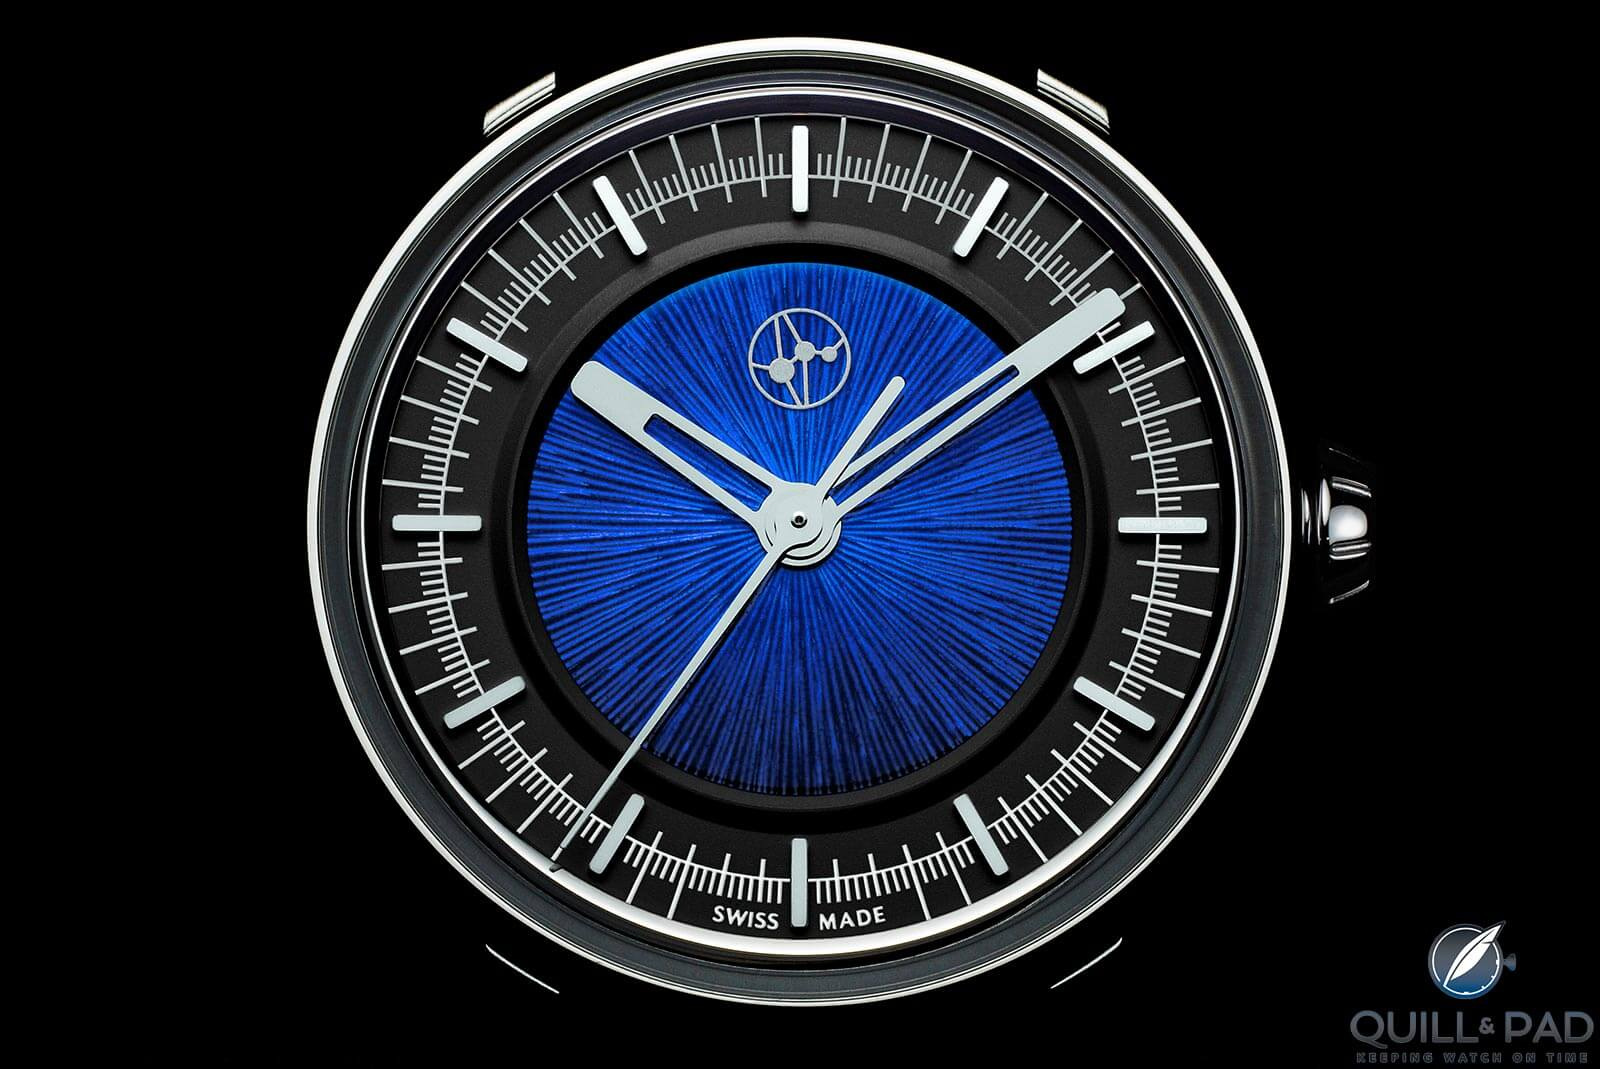 Lundis Bleus Ref. 1110 with blue enamel over radially- lined dial